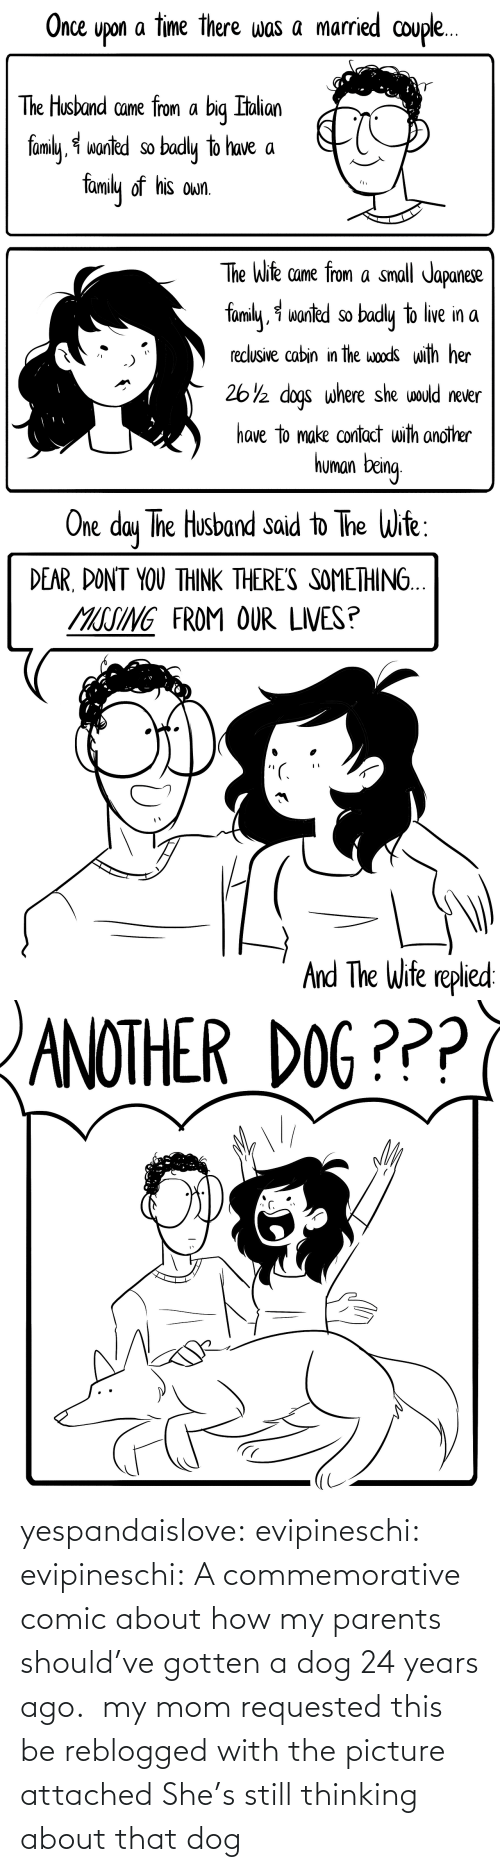 Inline: yespandaislove: evipineschi:  evipineschi: A commemorative comic about how my parents should've gotten a dog 24 years ago.  my mom requested this be reblogged with the picture attached   She's still thinking about that dog